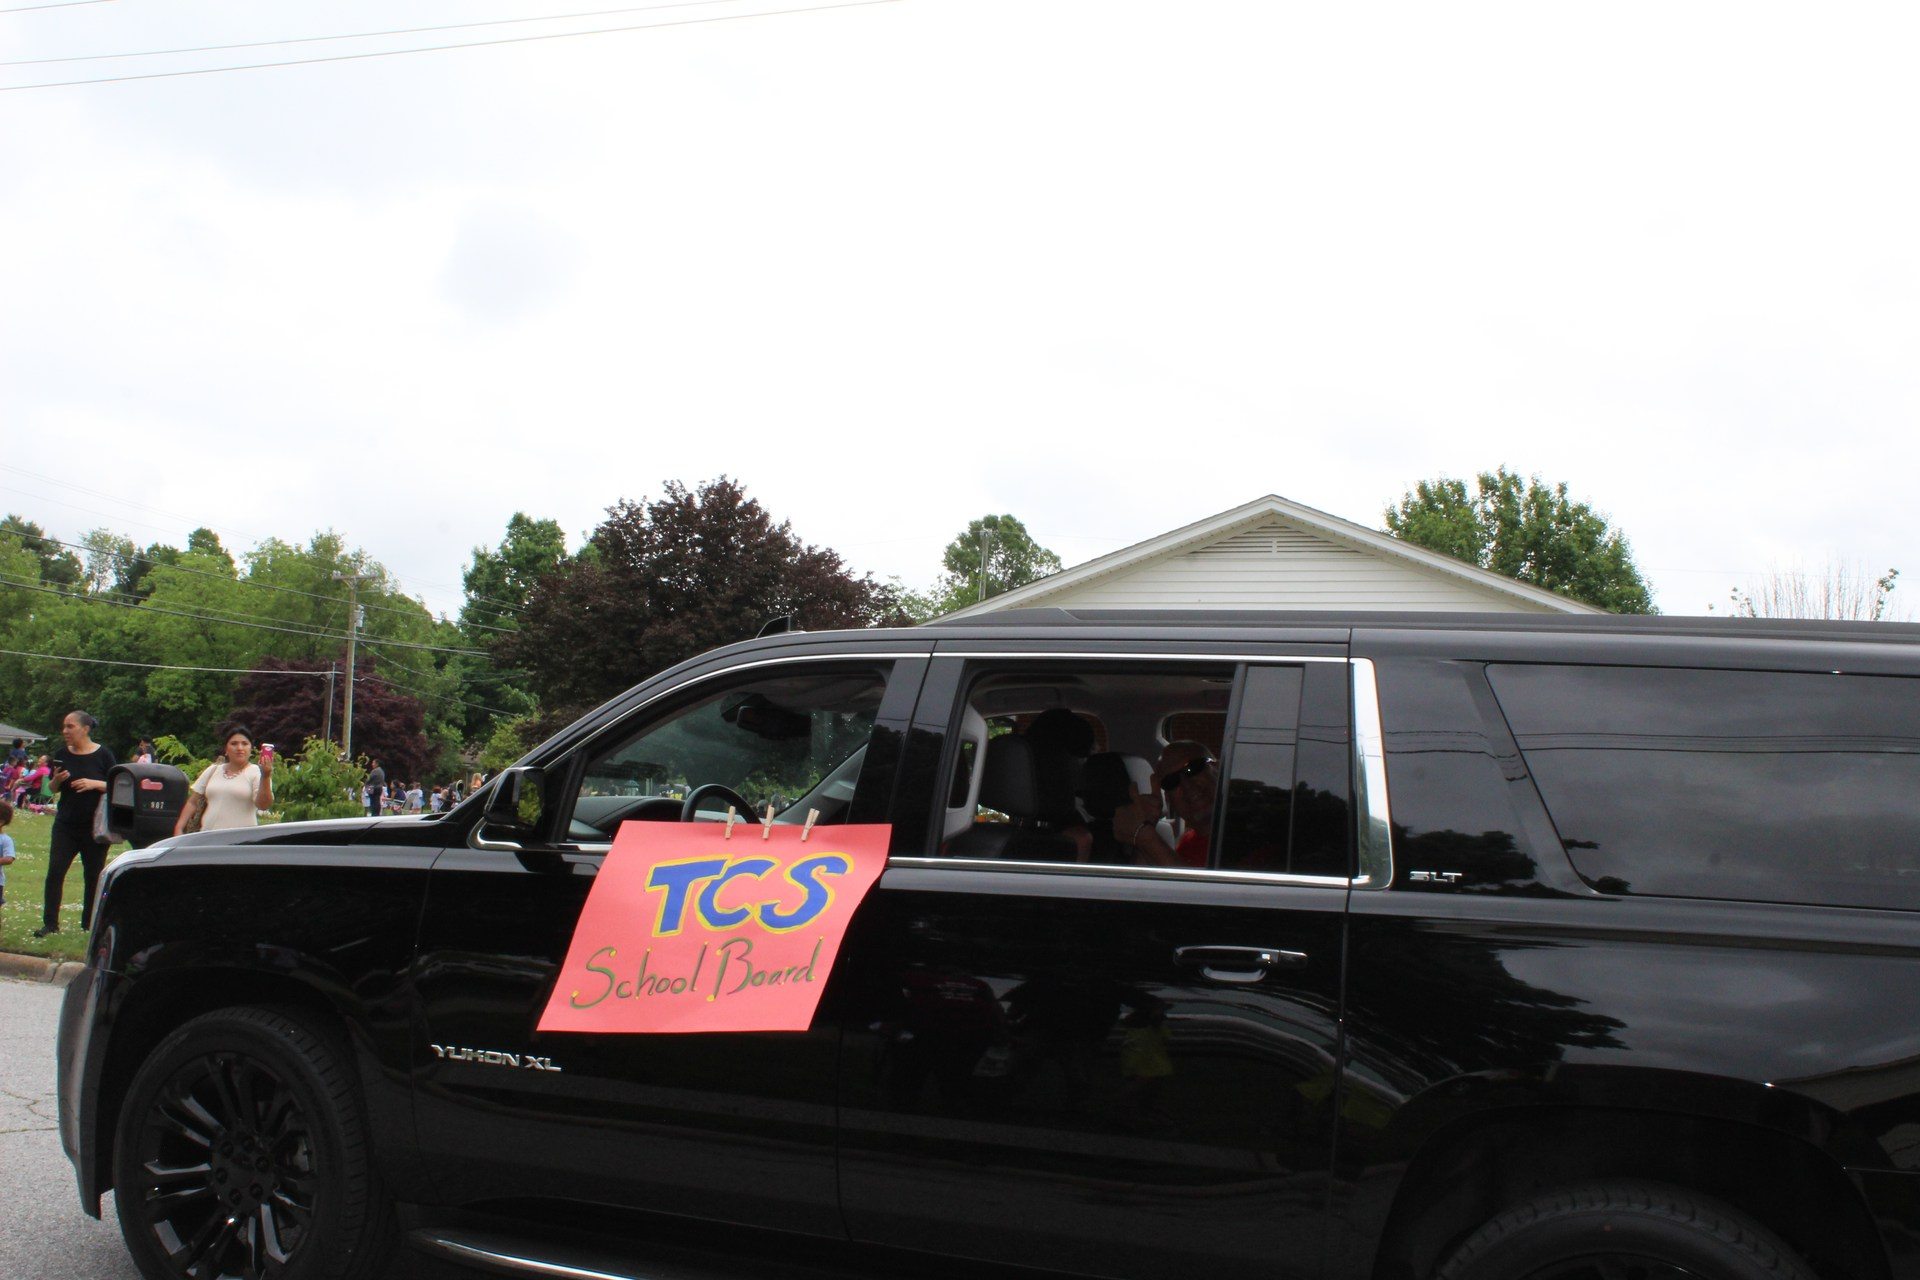 TCS school board members in black SUV